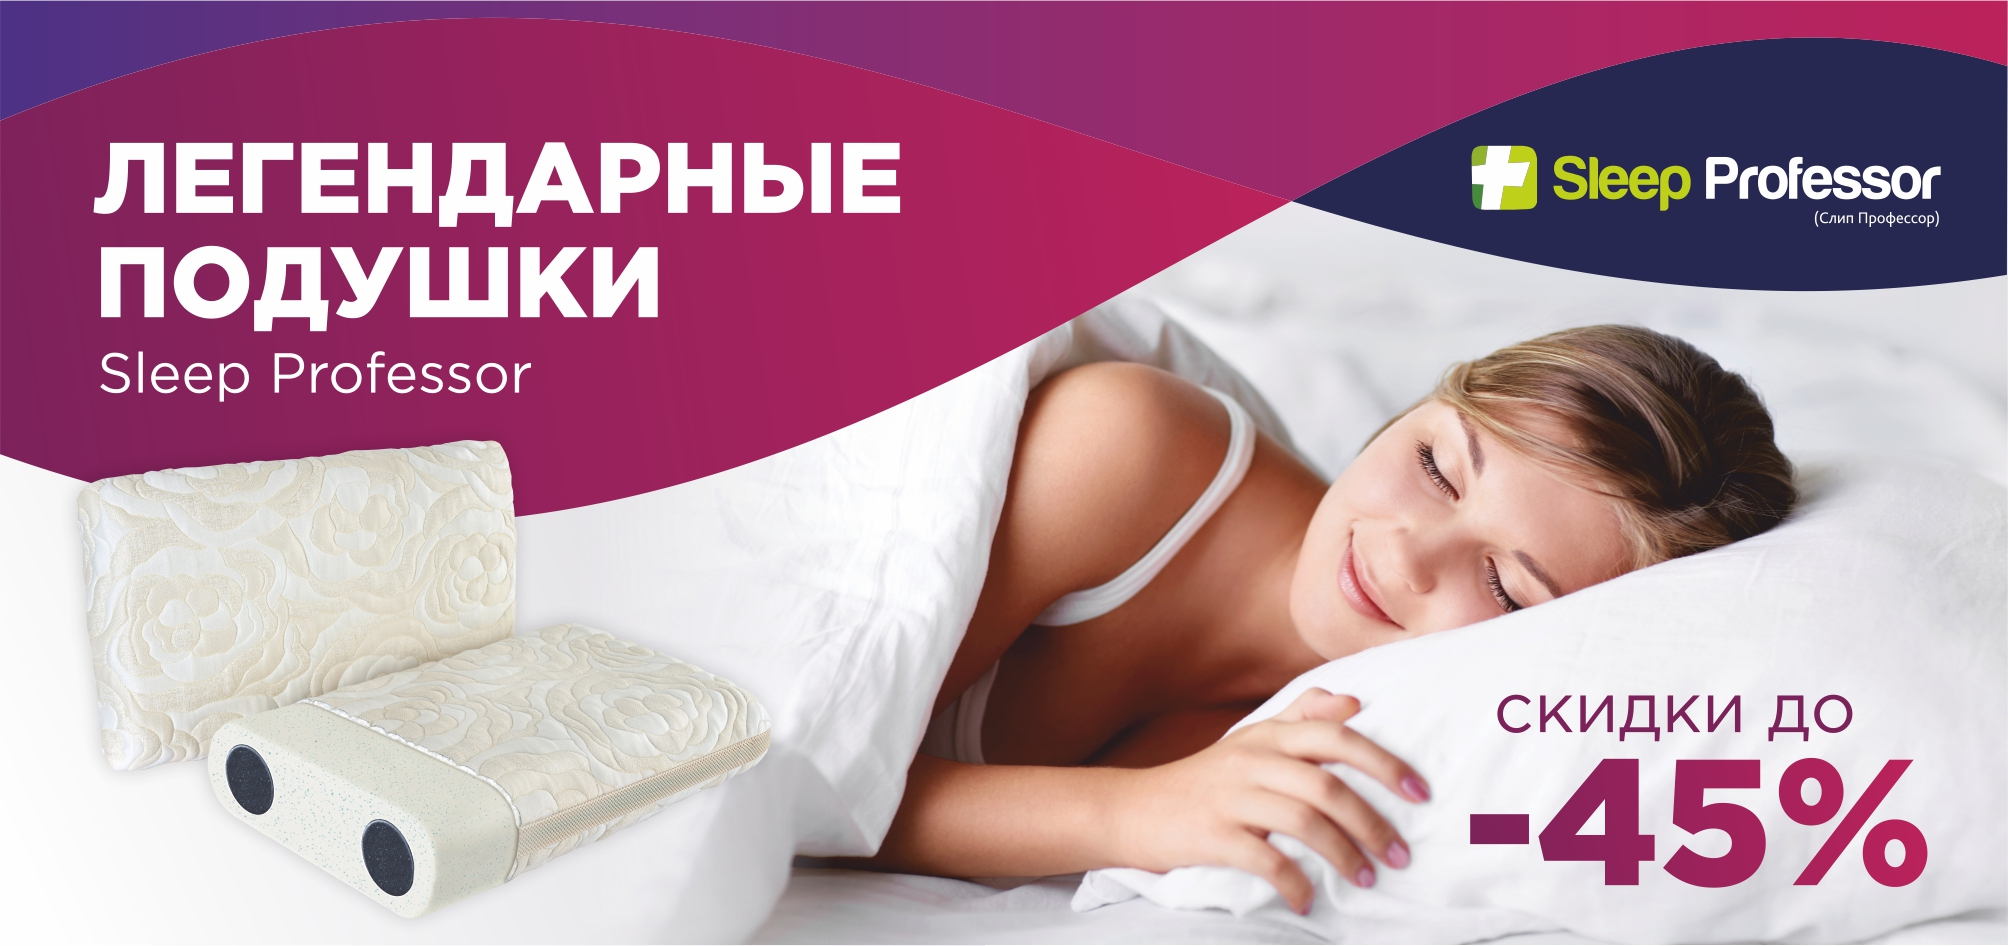 Подушки Sleep Professor